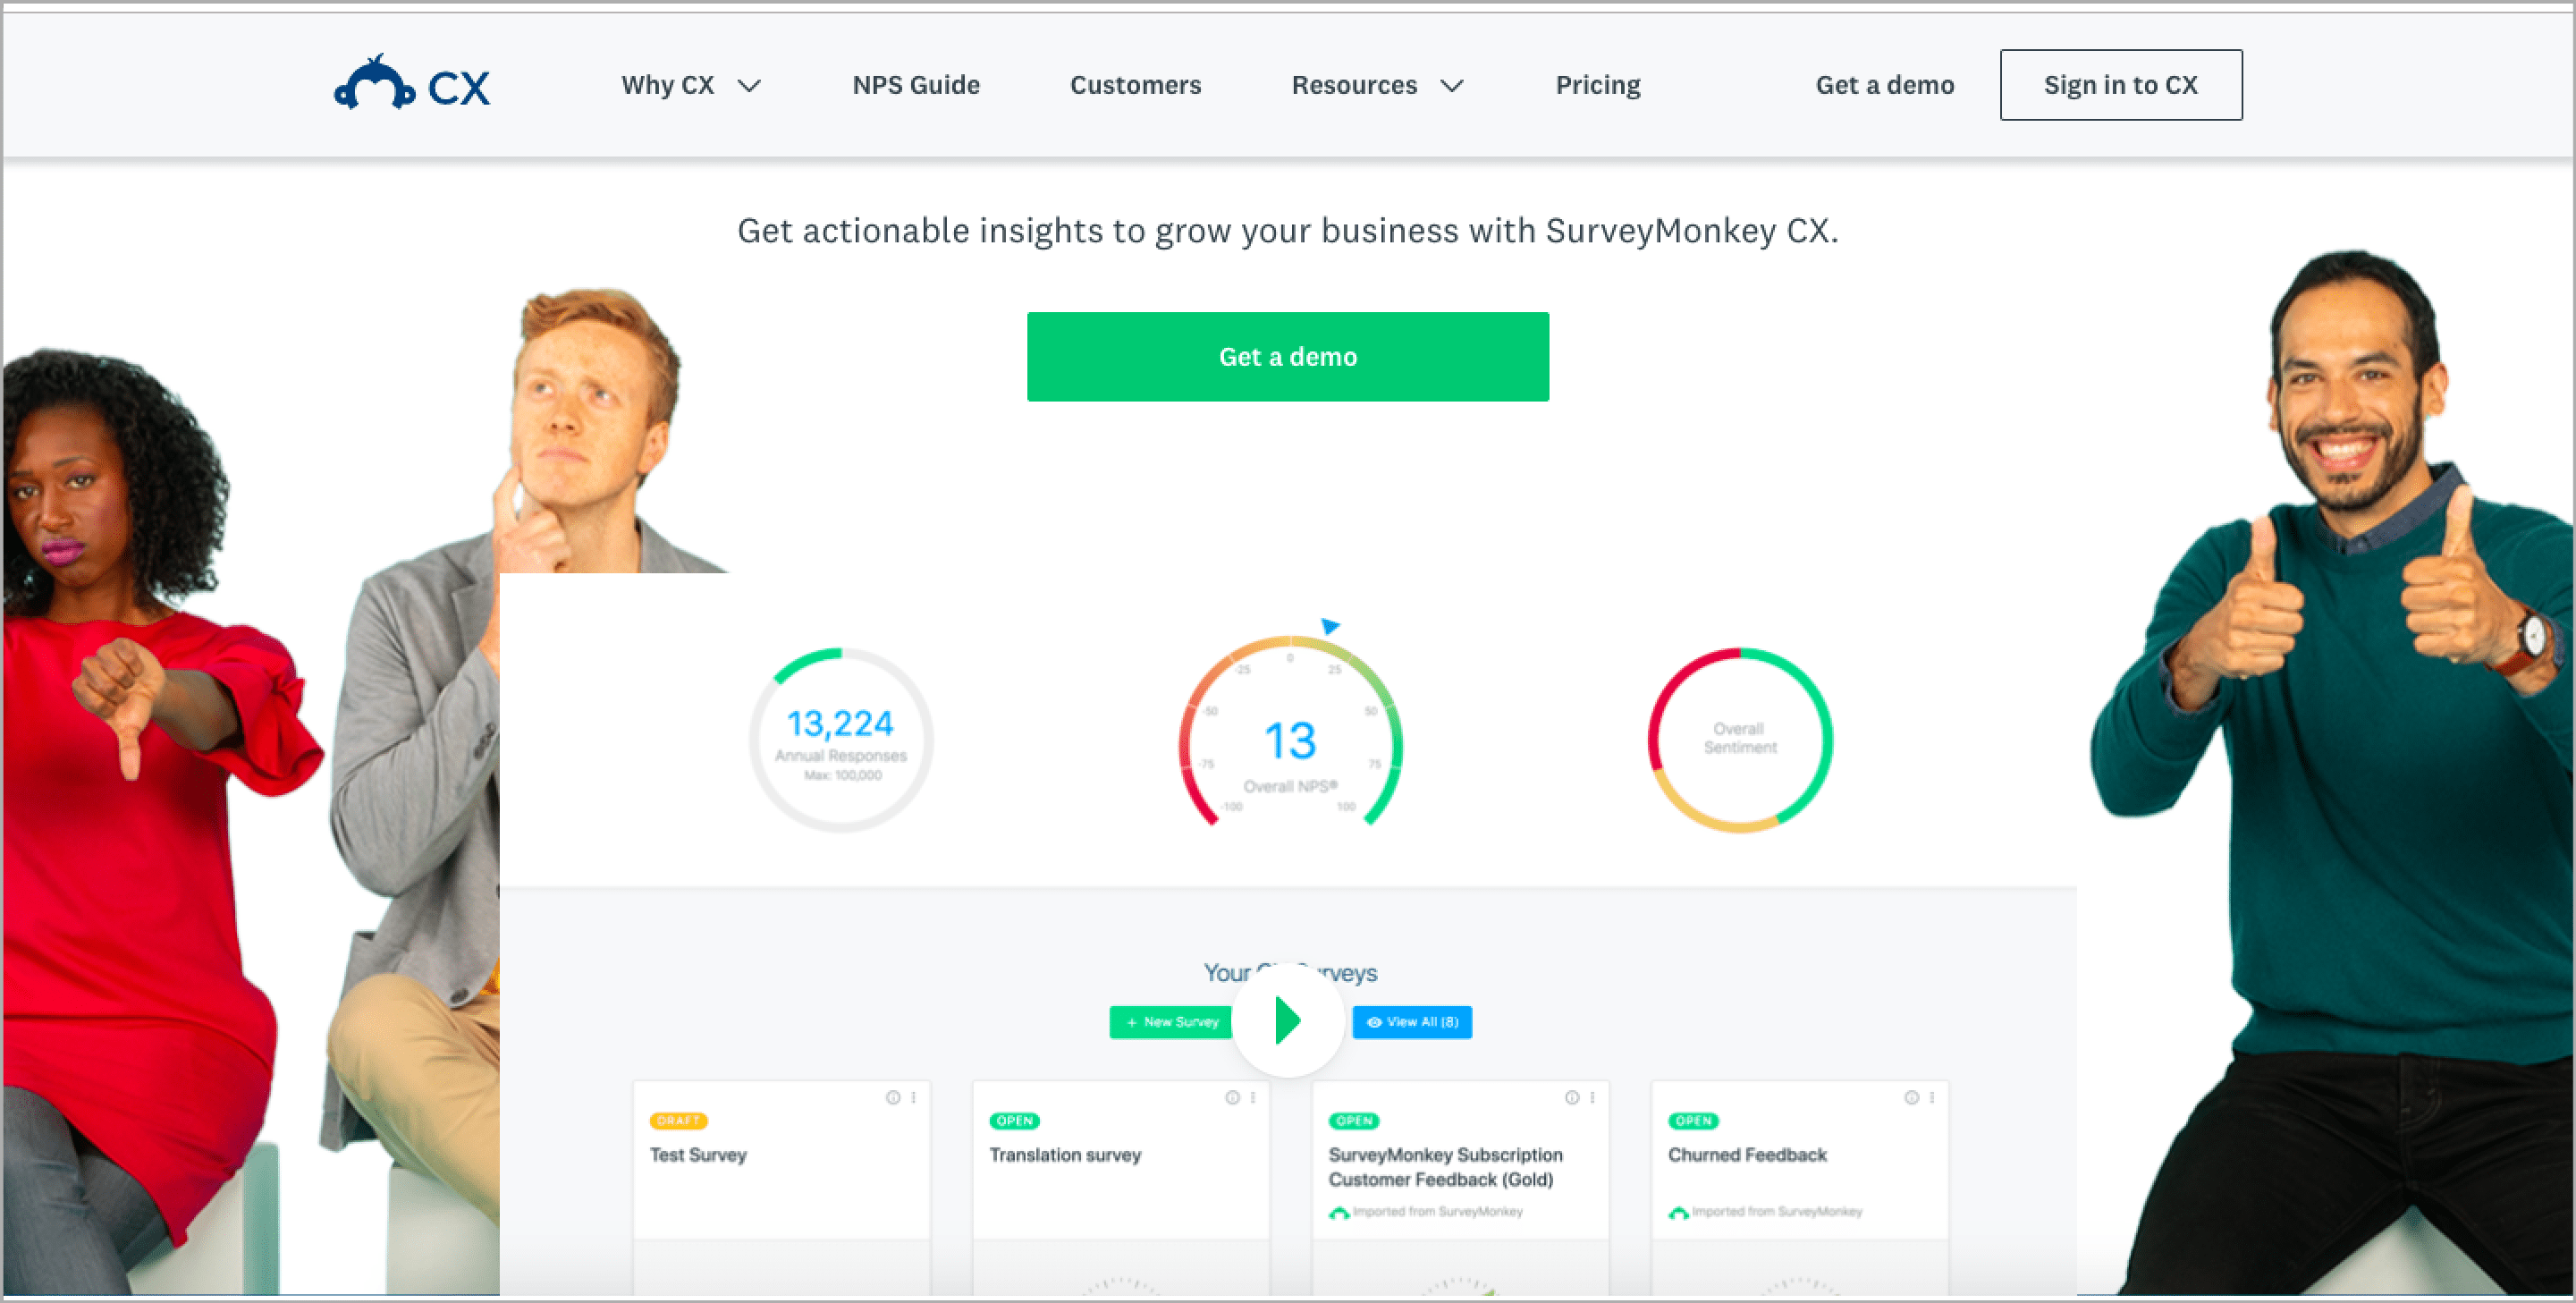 SurveyMonkey CX is an NPS solution that facilitates customer loyalty, experience and online reputation management.